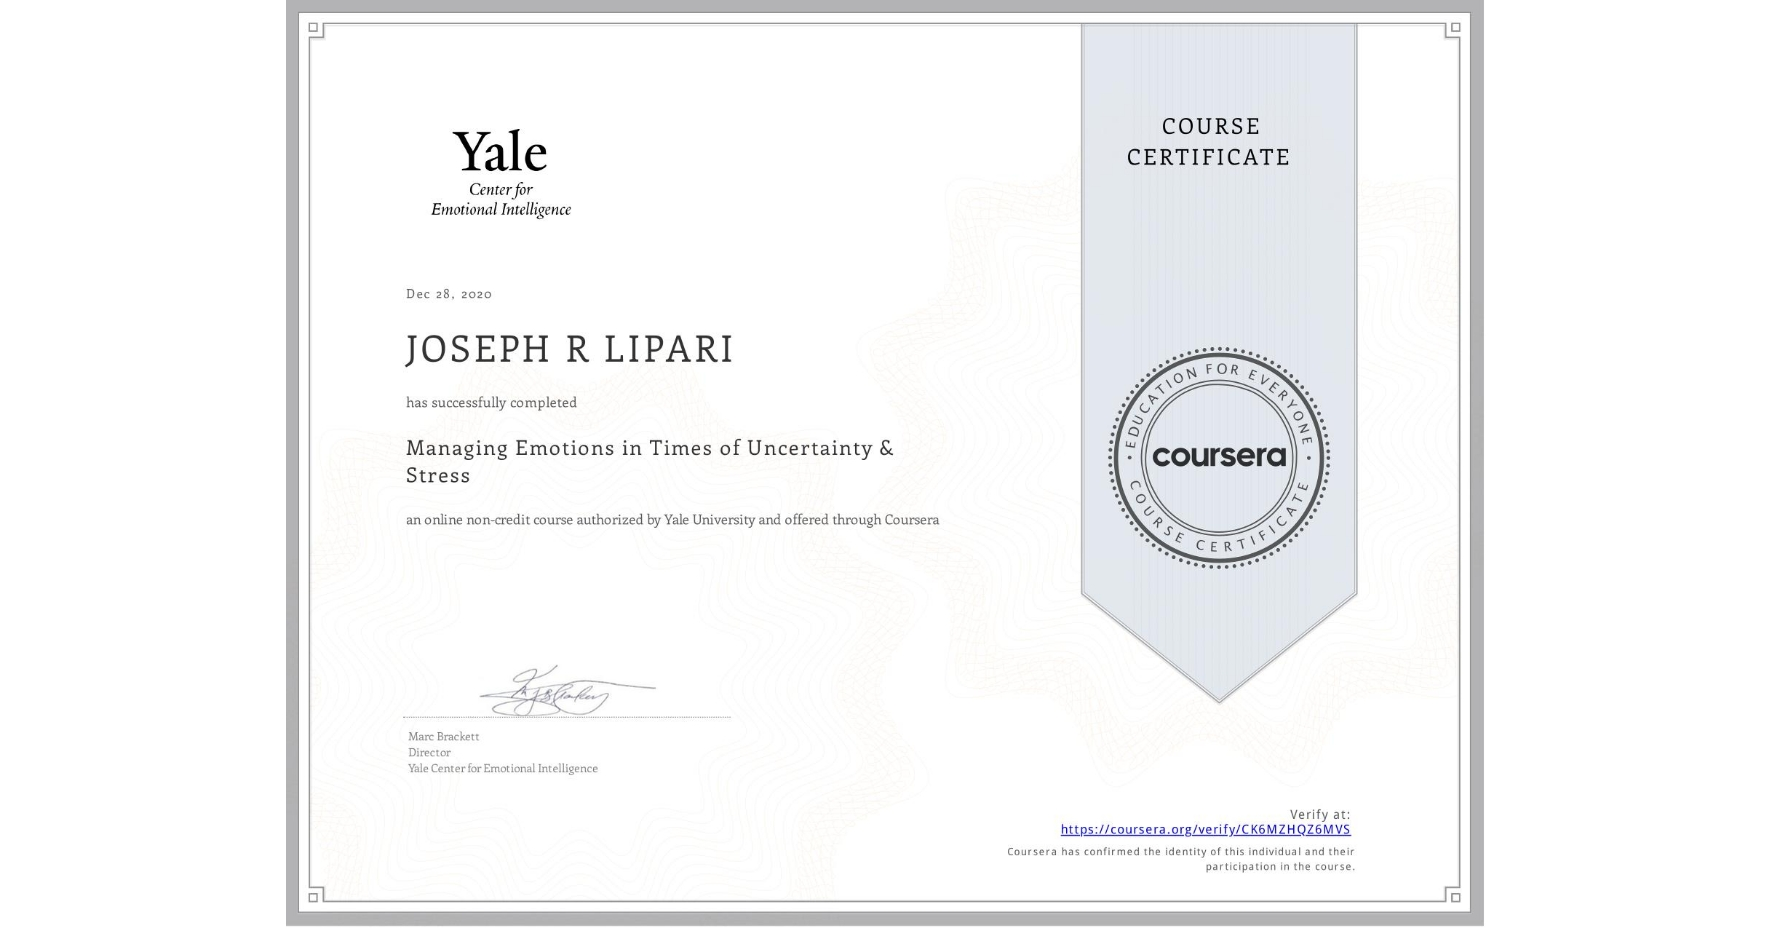 View certificate for JOSEPH R  LIPARI, Managing Emotions in Times of Uncertainty & Stress, an online non-credit course authorized by Yale University and offered through Coursera